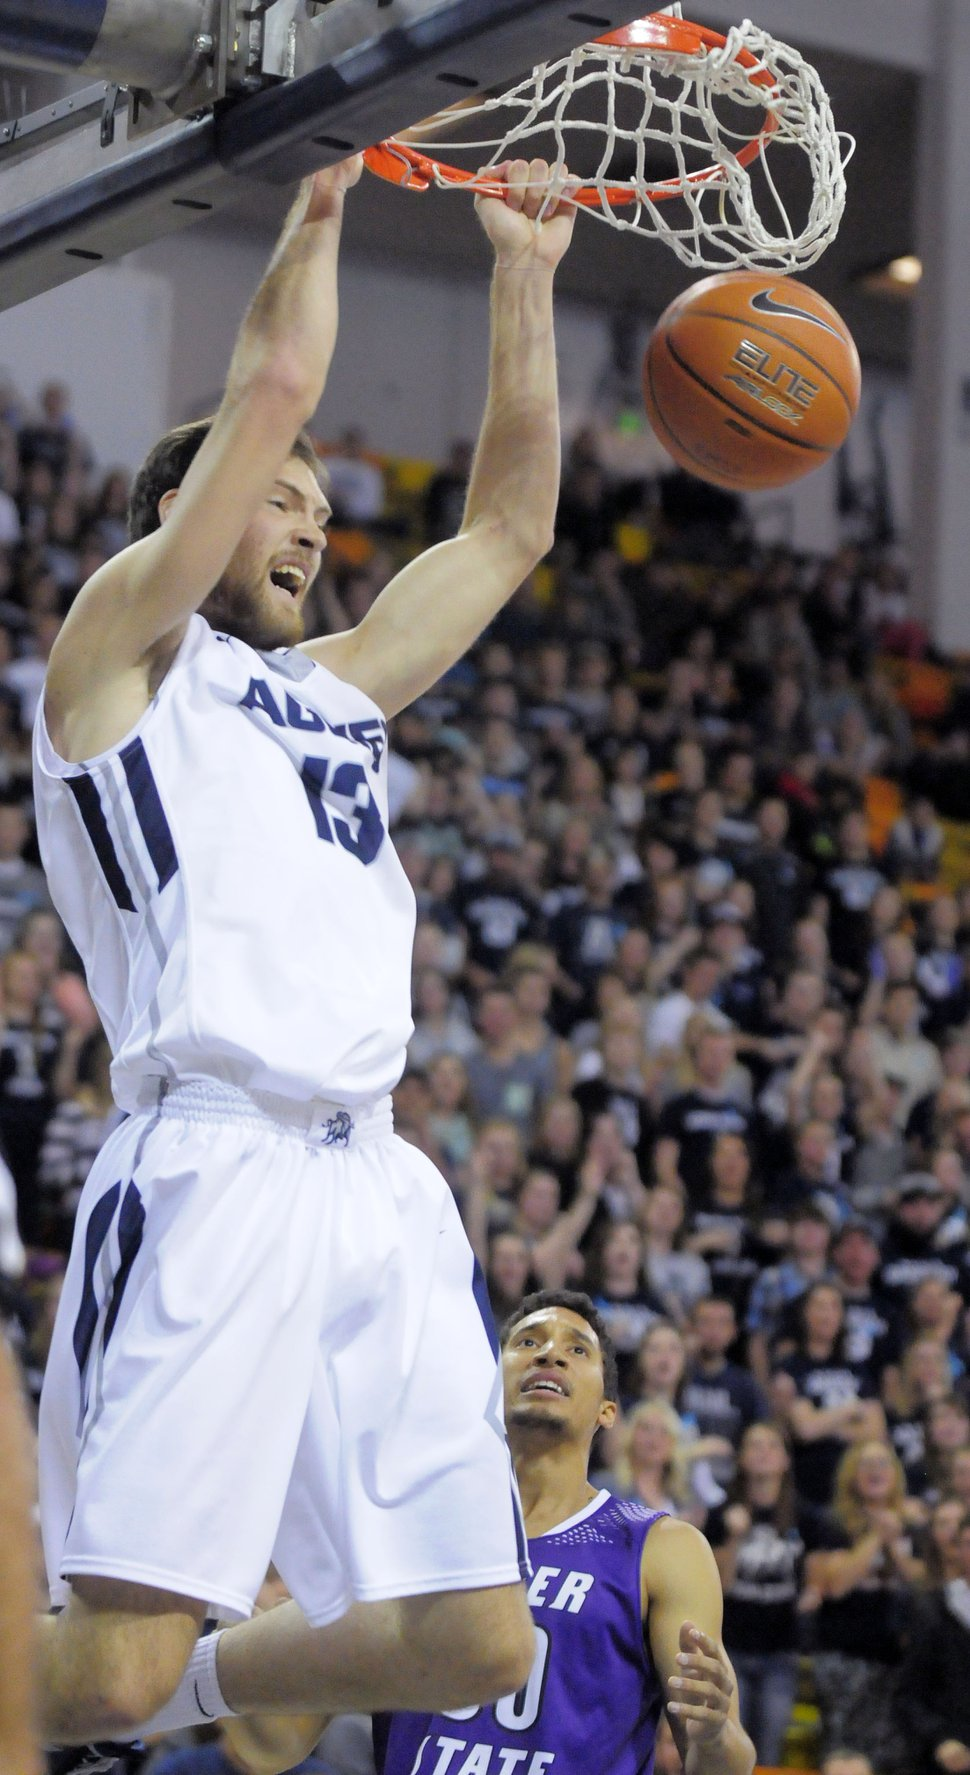 Utah State forward David Collette dunks as Weber State guard Jeremy Senglin watches during an NCAA college basketball game, Friday, Nov. 14, 2014, in Logan, Utah. (AP Photo/The Herald Journal, Eli Lucero)